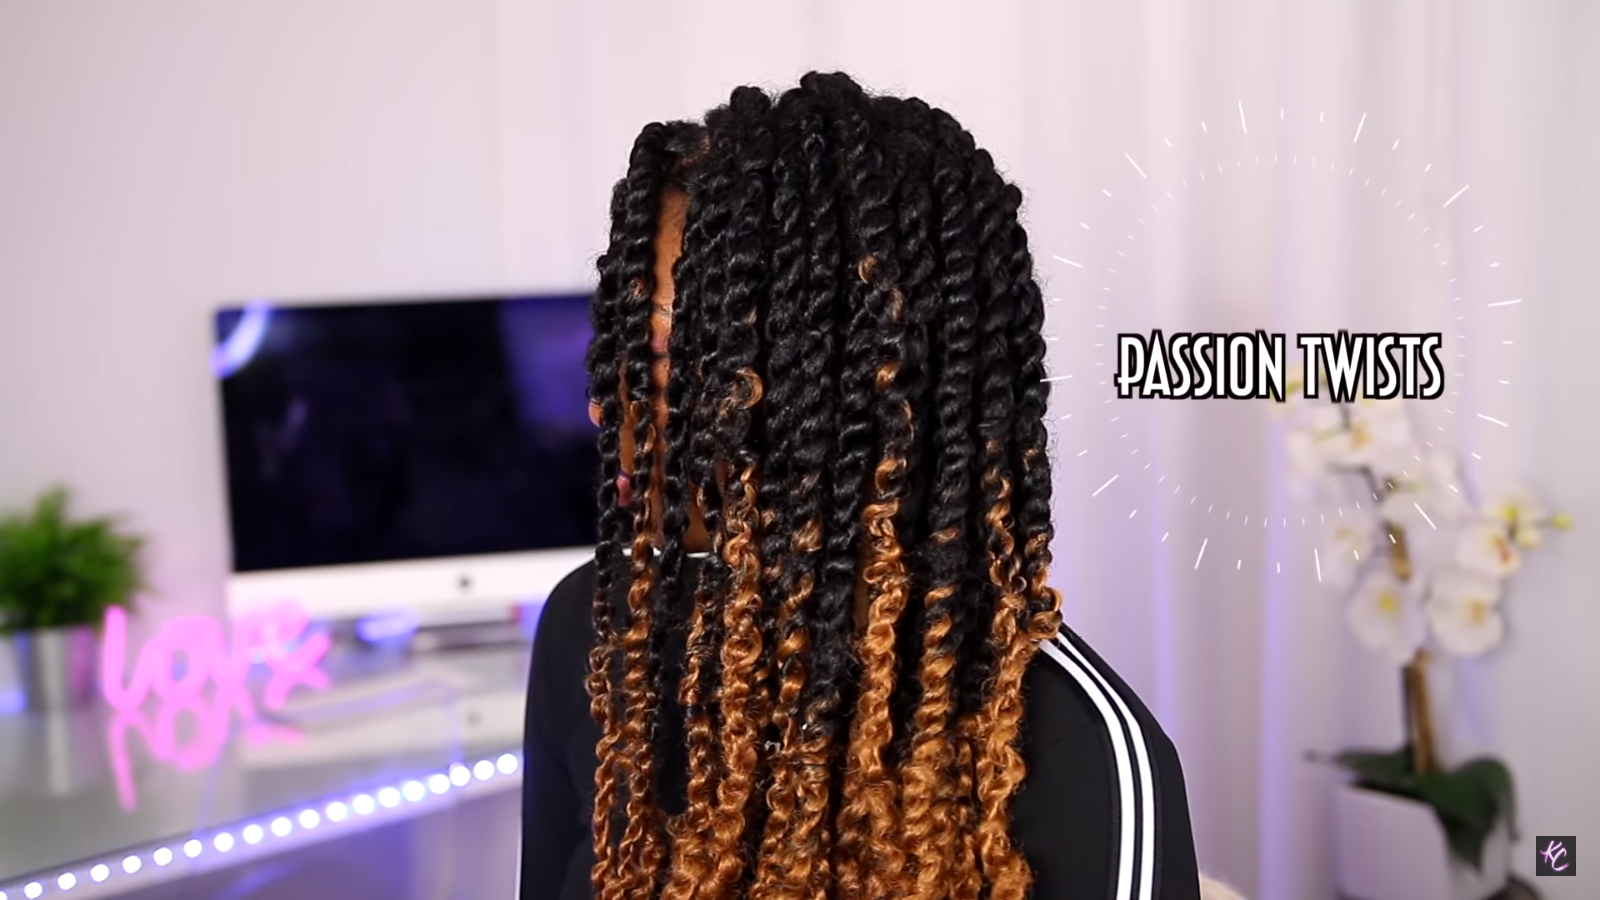 passion twists